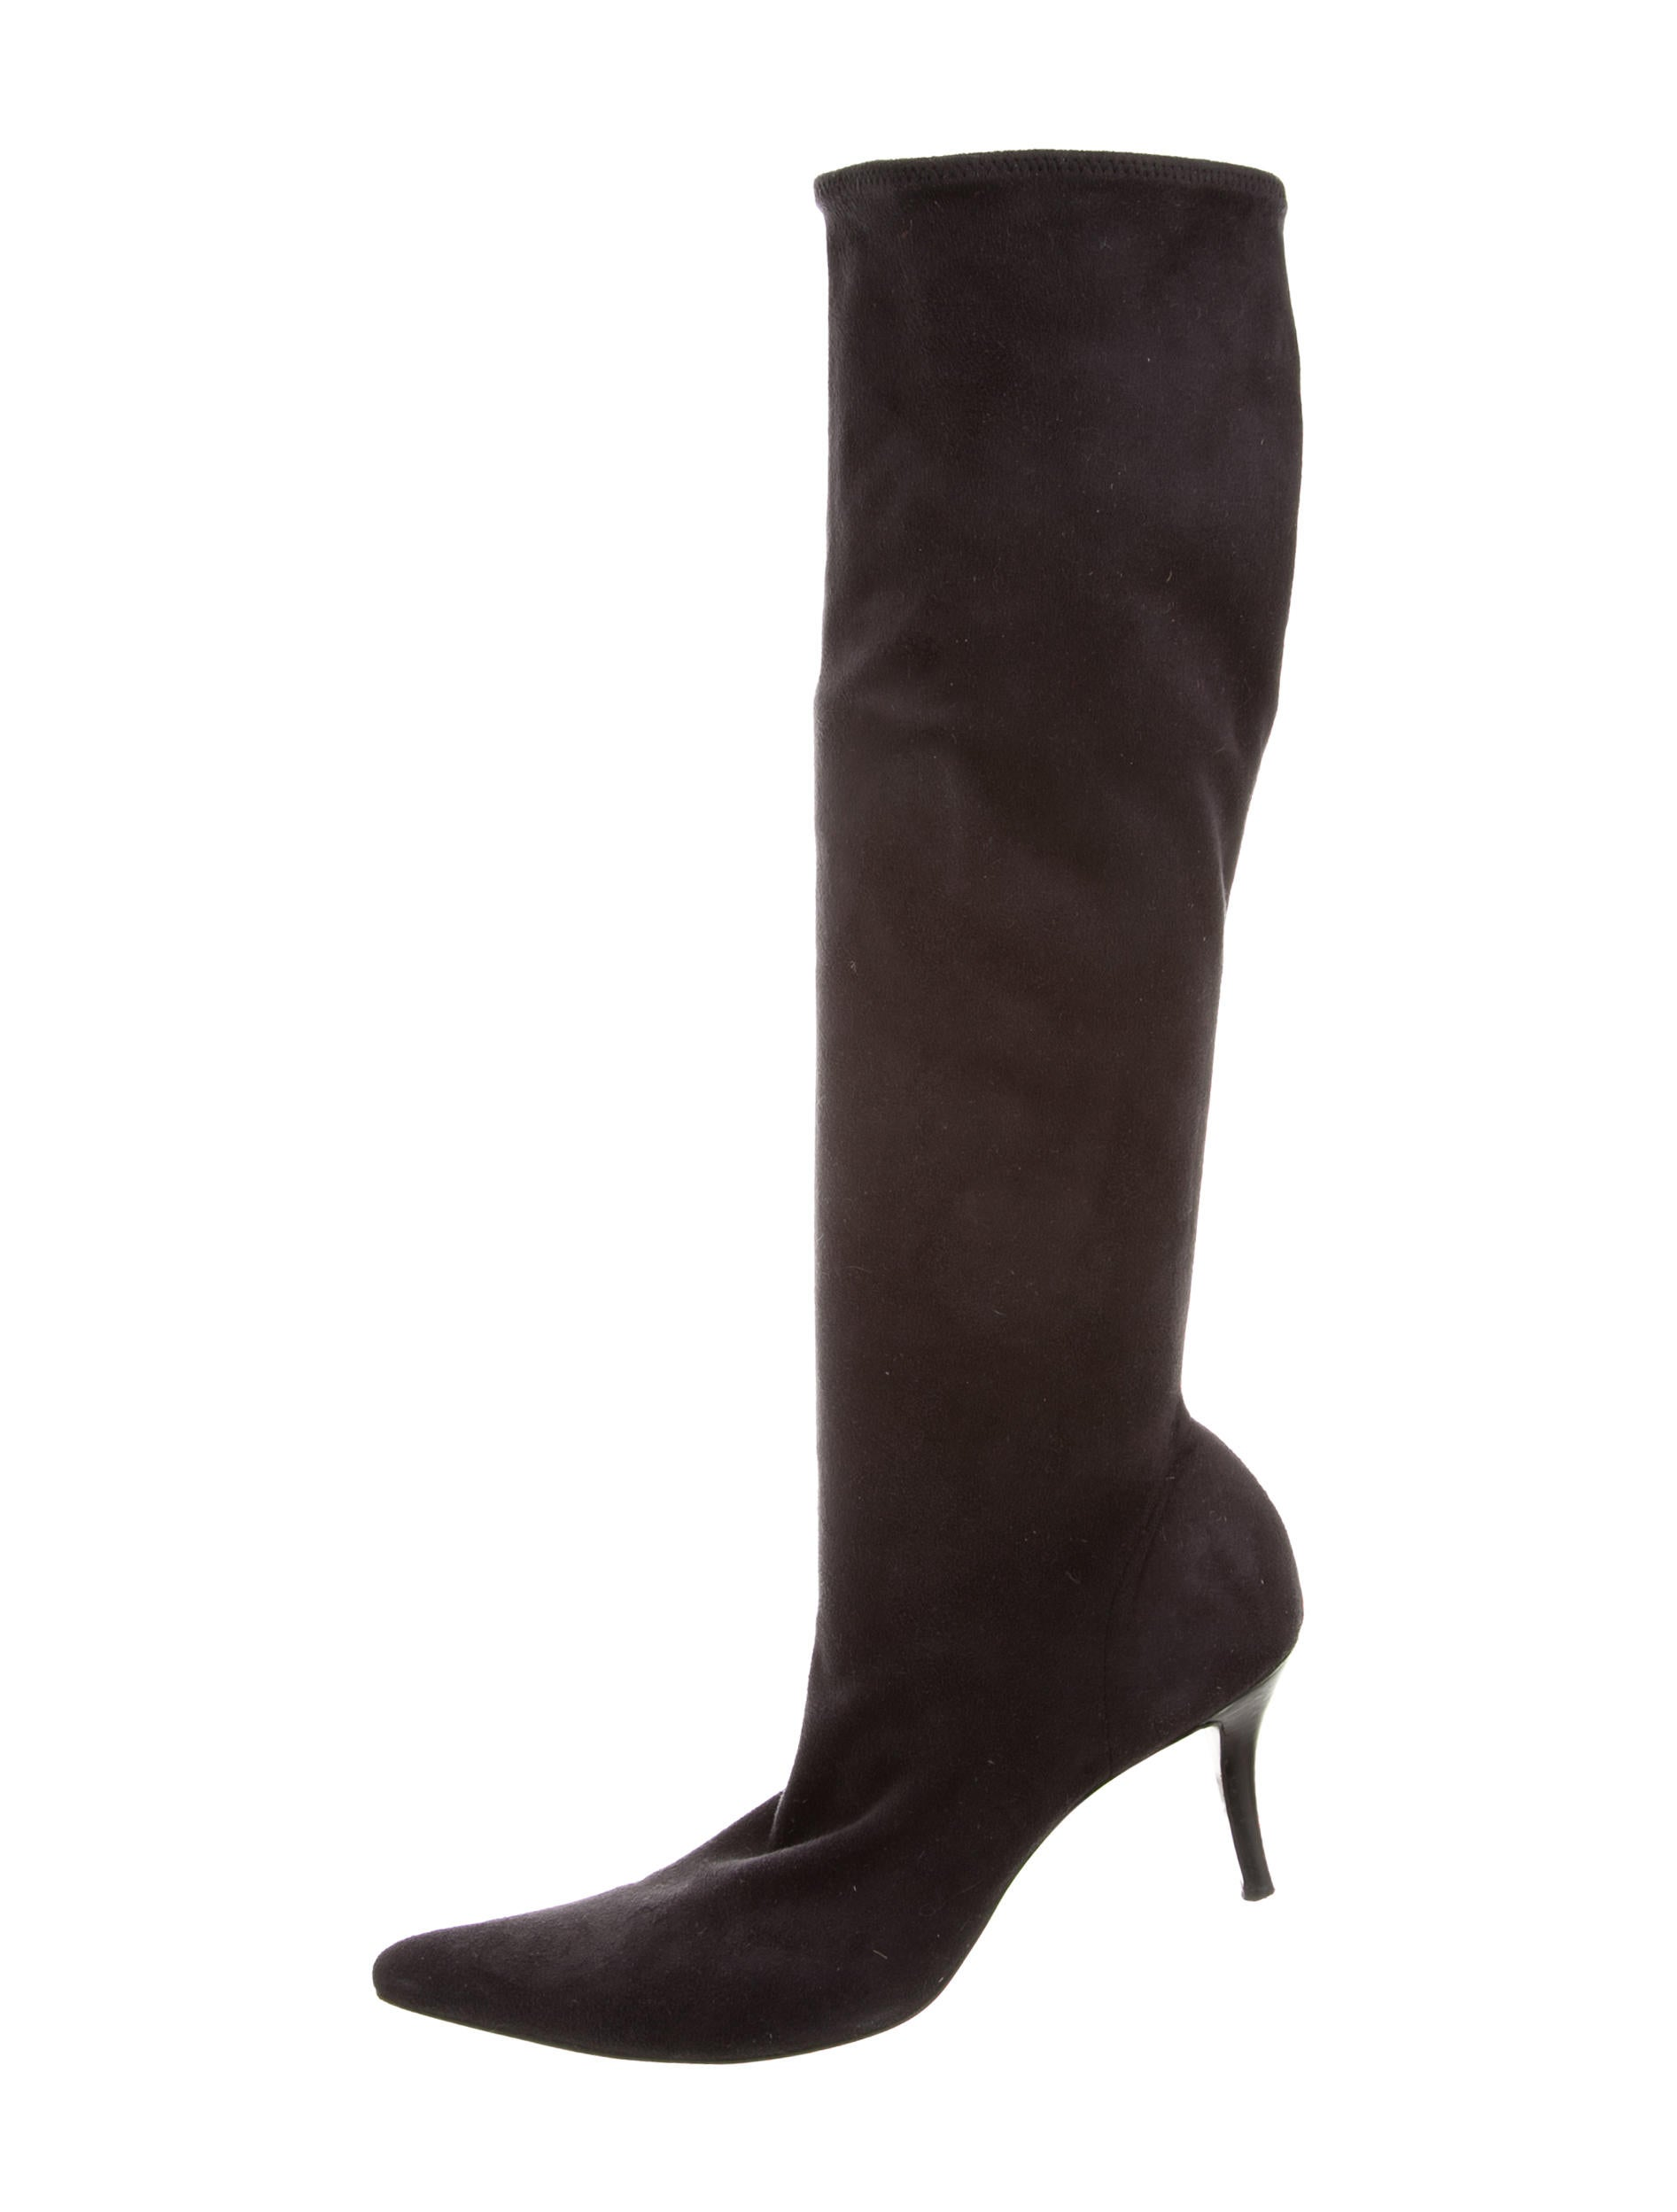 official Walter Steiger Suede Pointed-Toe Boots 2015 new cheap price sale eastbay for nice online 4Q5Psc